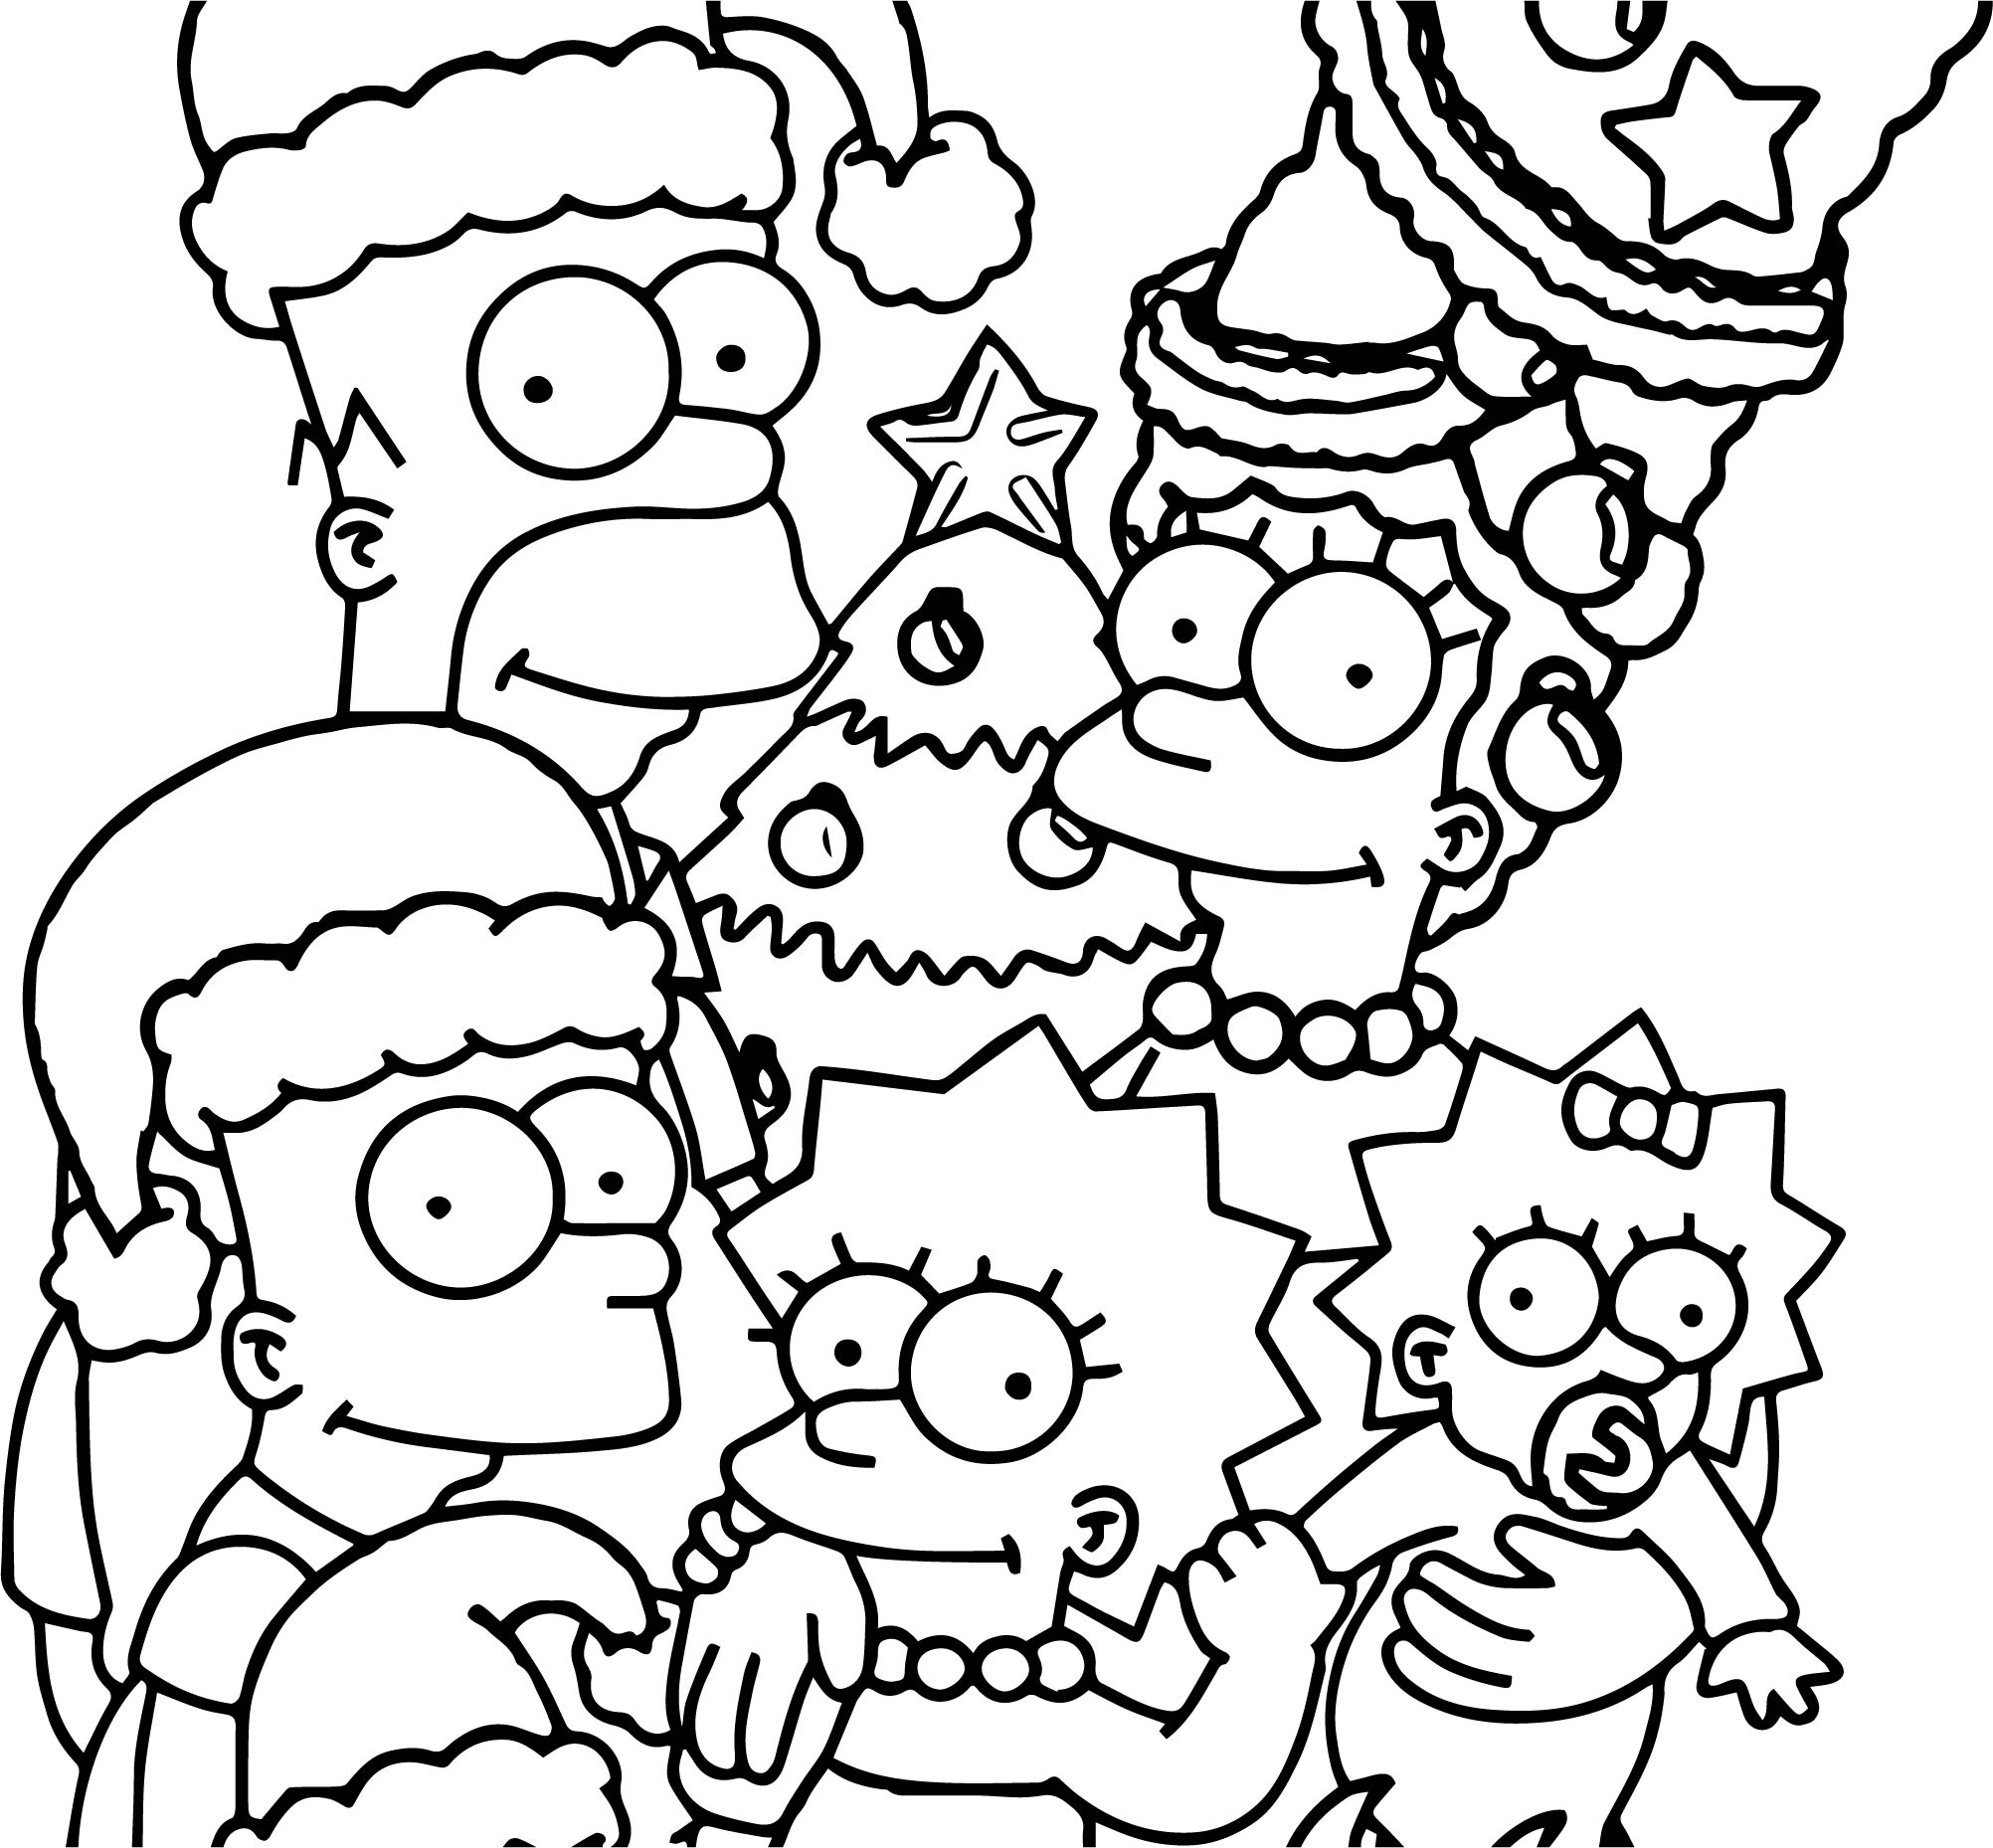 coloring simpsons 32 simpsons coloring pages printable pdf print color craft simpsons coloring